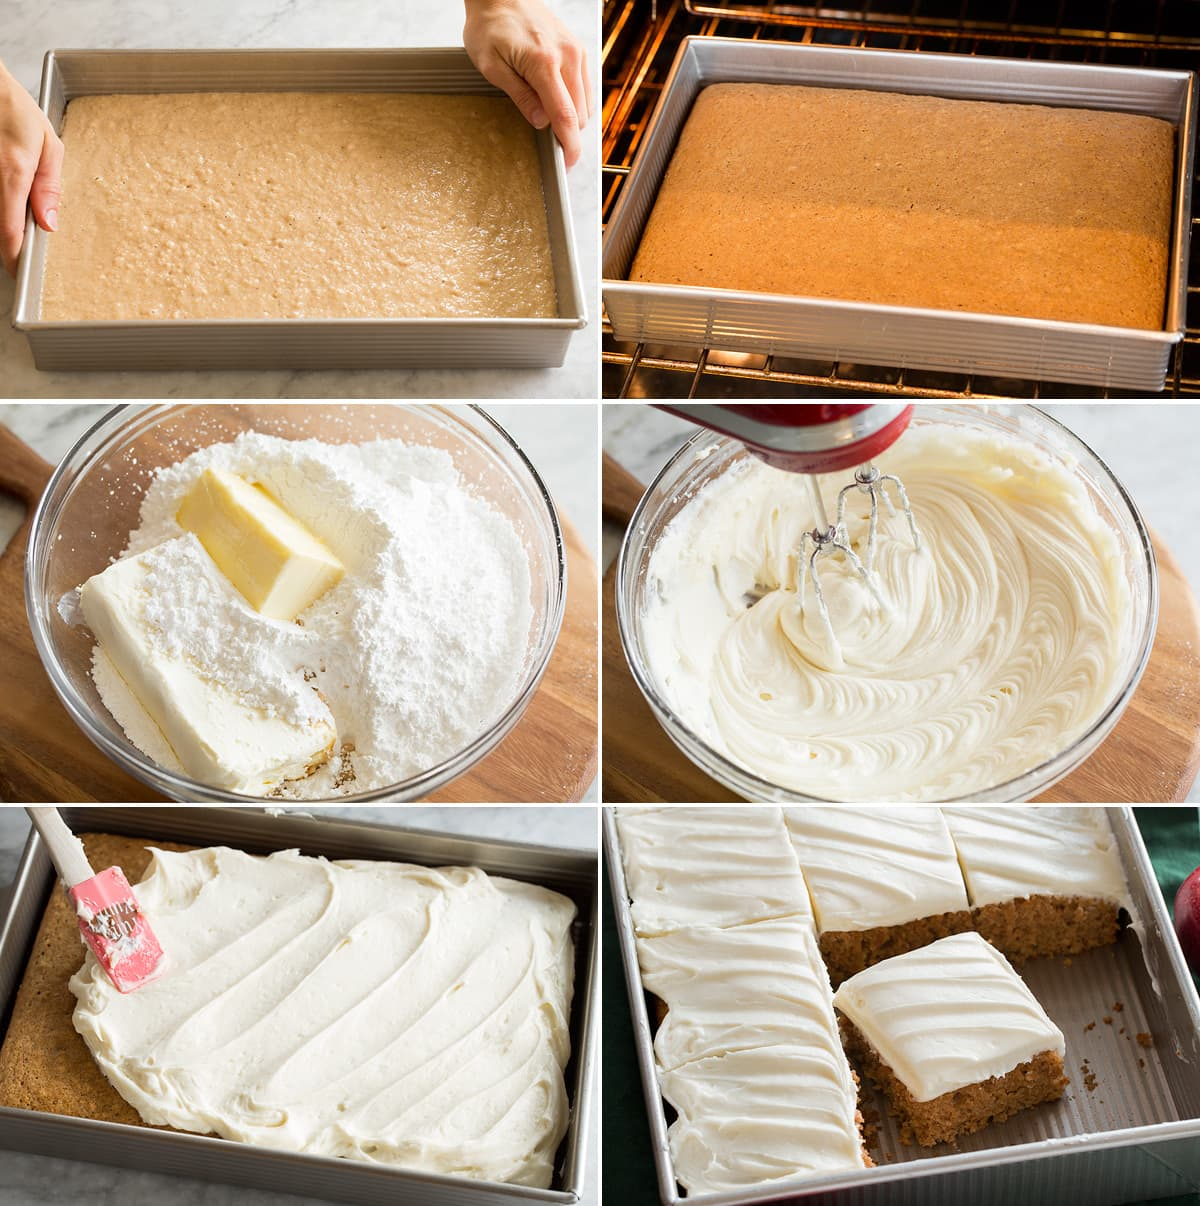 Collage of 6 images showing applesauce cake in pan before and after baking. Then shows making cream cheese frosting and frosting cake.